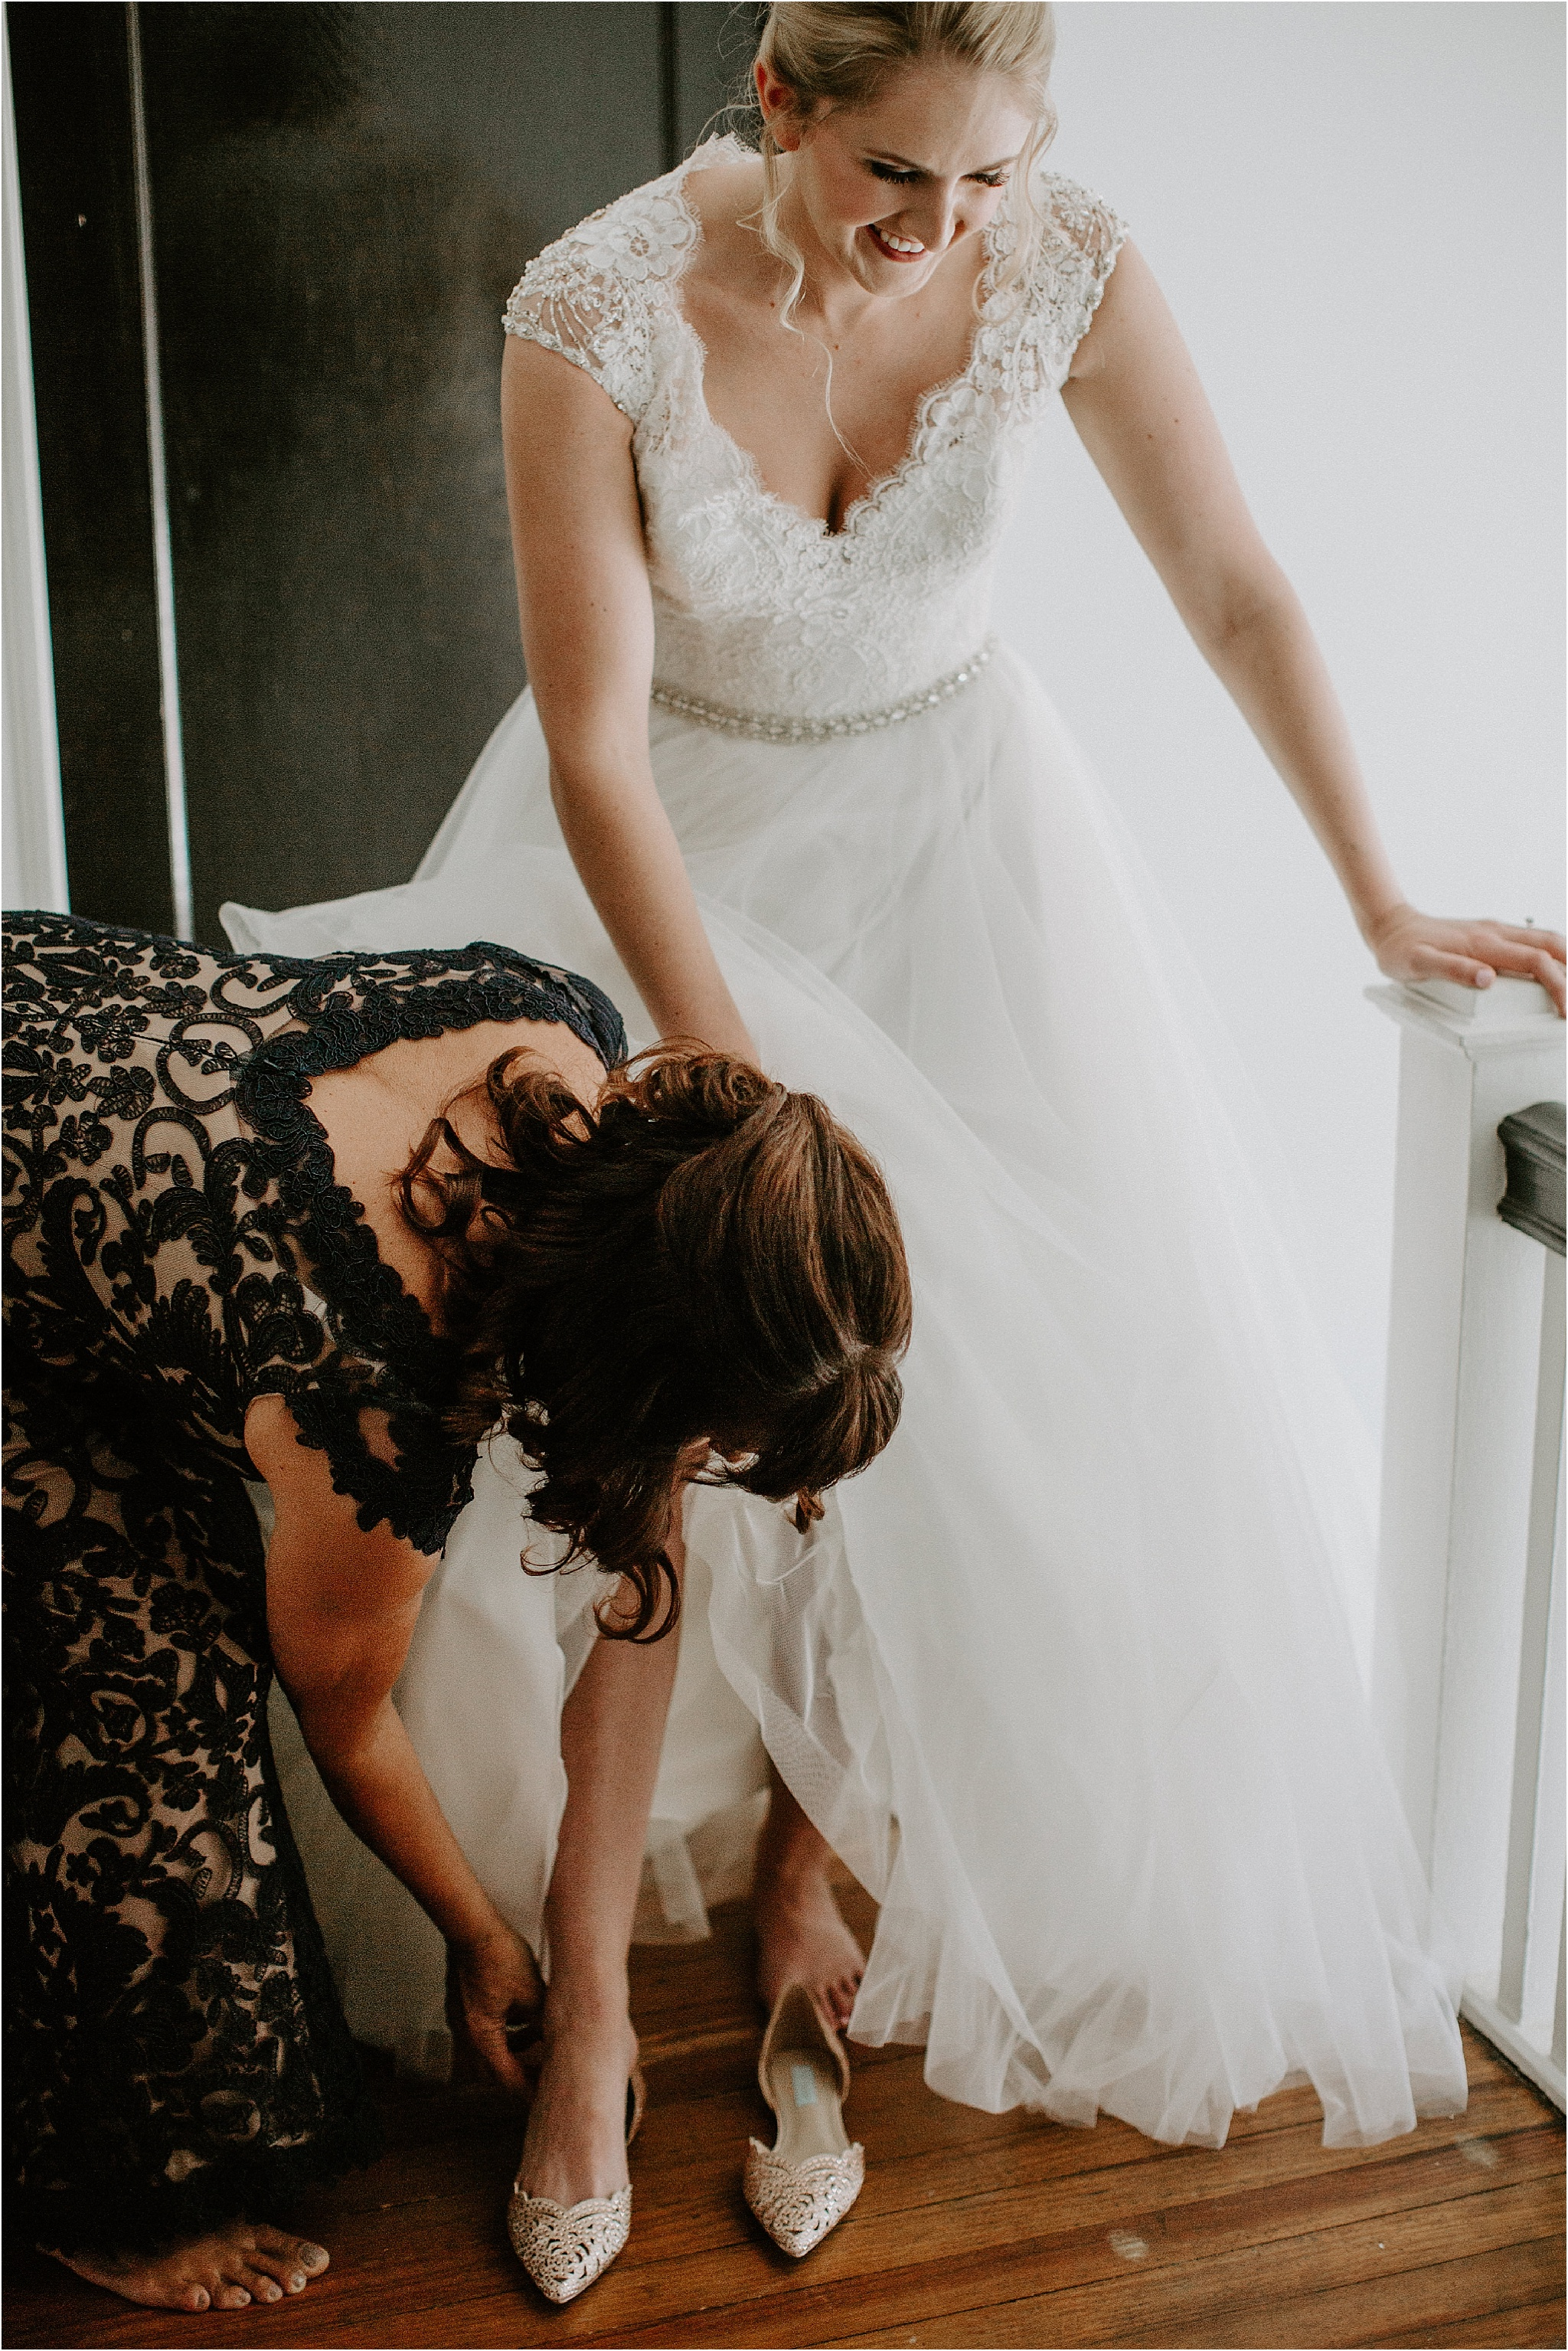 Sarah_Brookhart_Philadelphia_Wedding_Photographer_0008.jpg